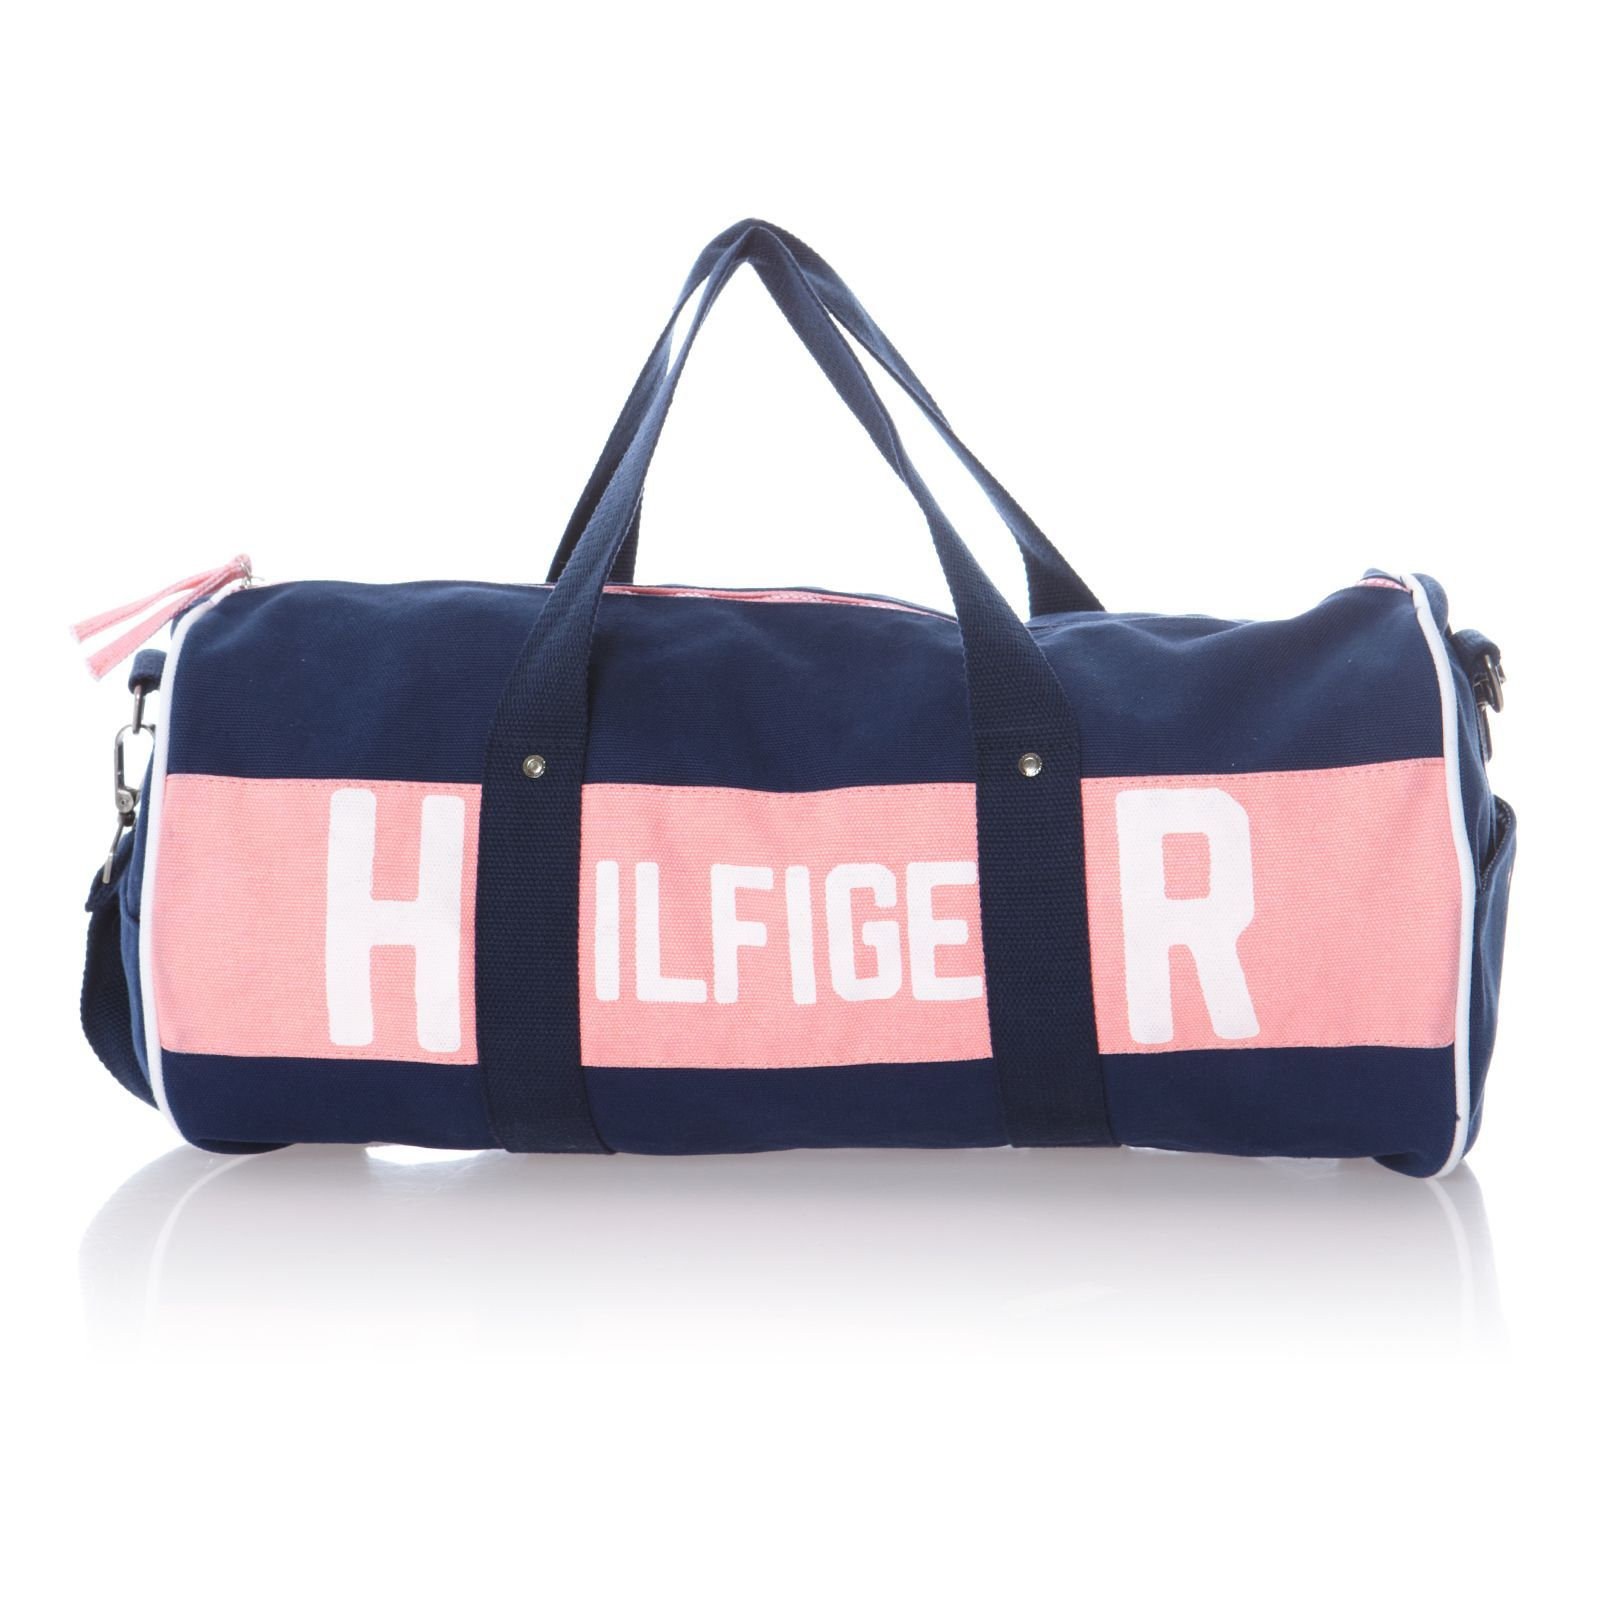 tommy hilfiger sac de sport bleu marine et rose bleu marine brandalley. Black Bedroom Furniture Sets. Home Design Ideas